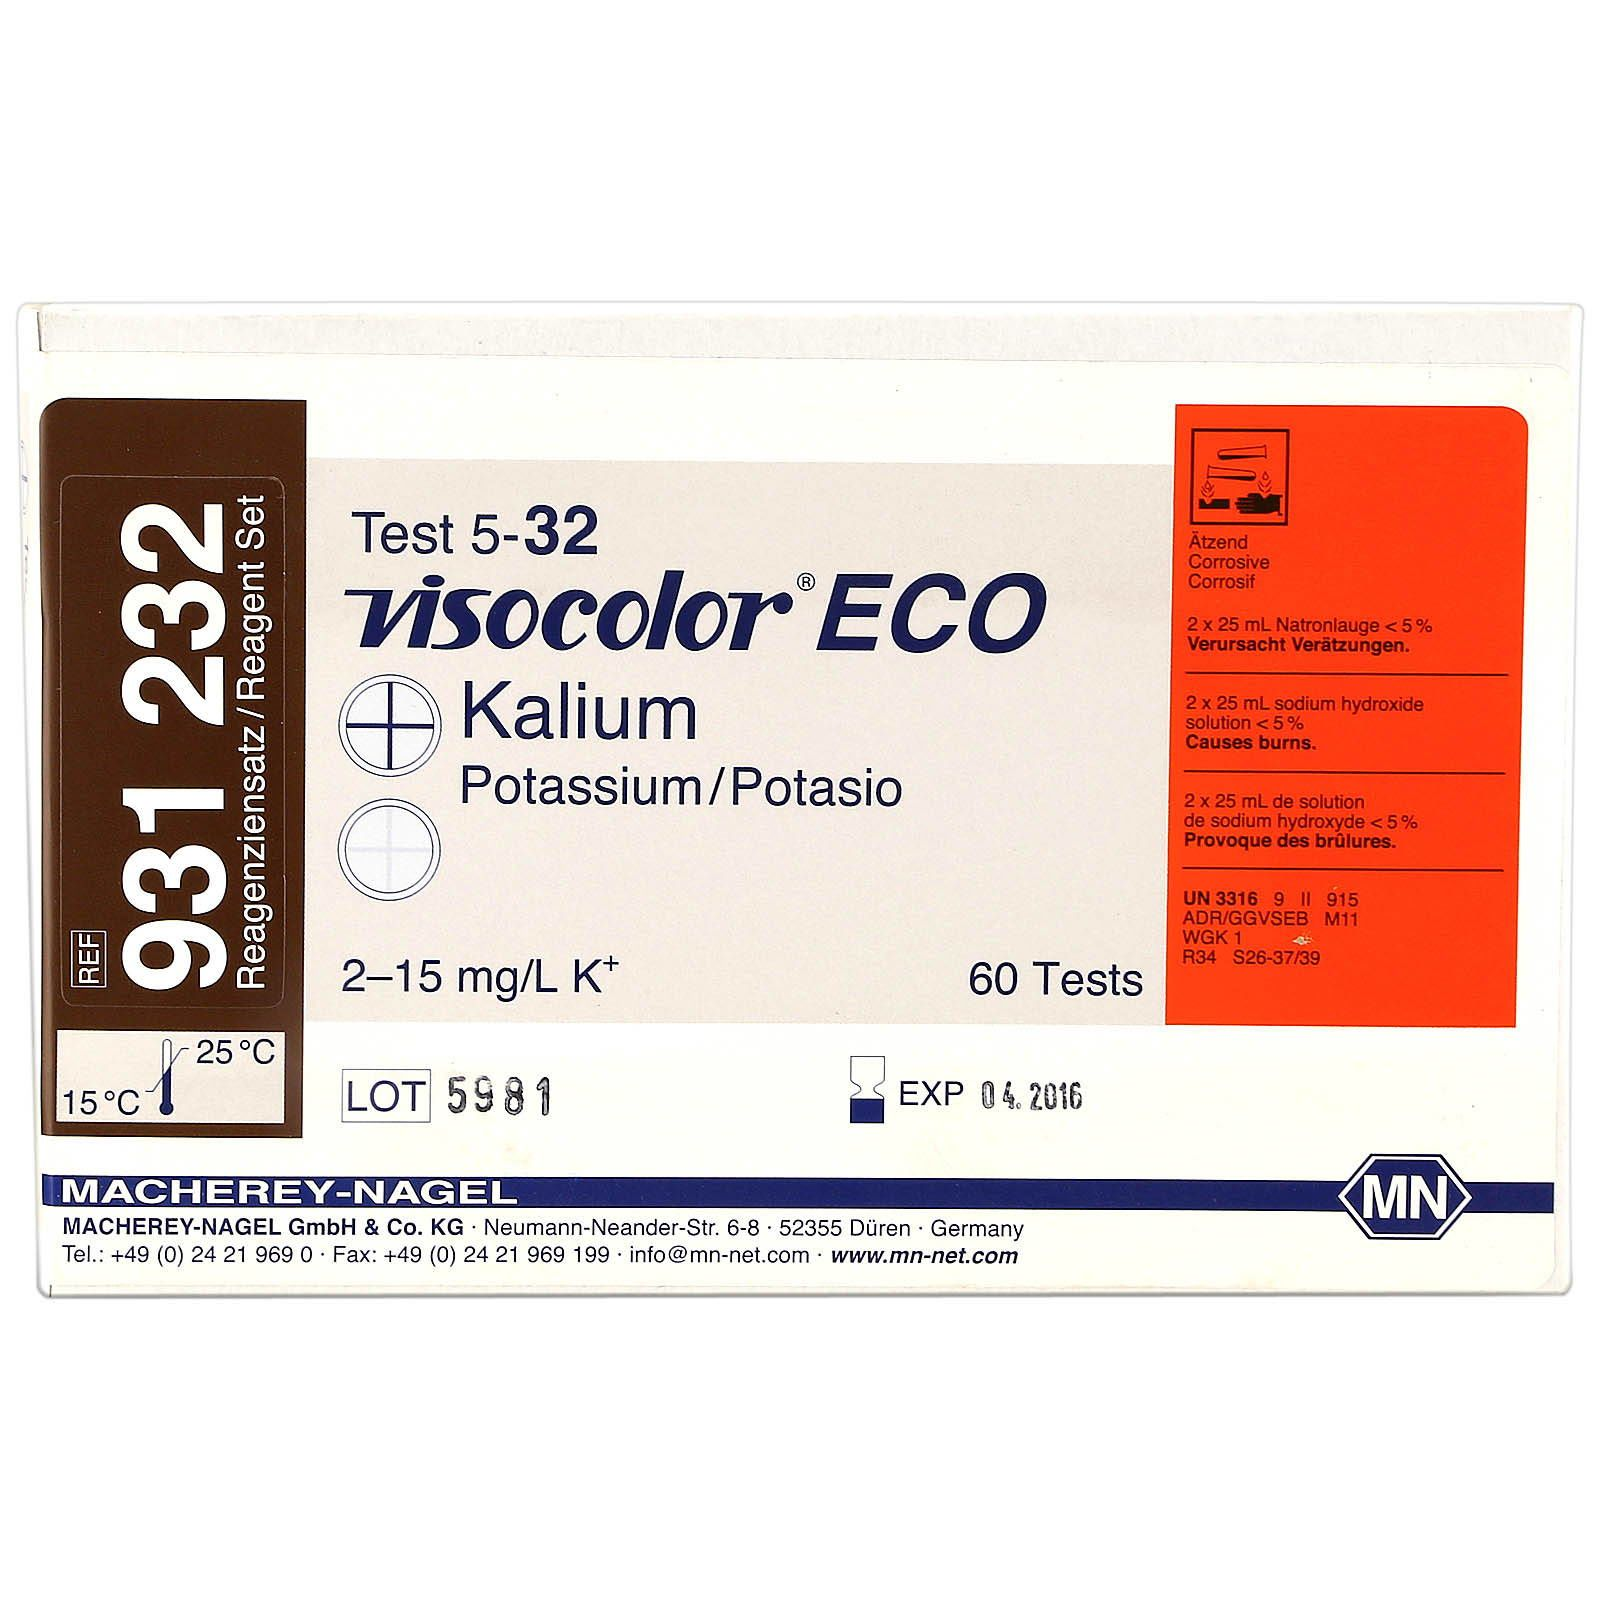 Macherey-Nagel - Visocolor ECO - Kalium